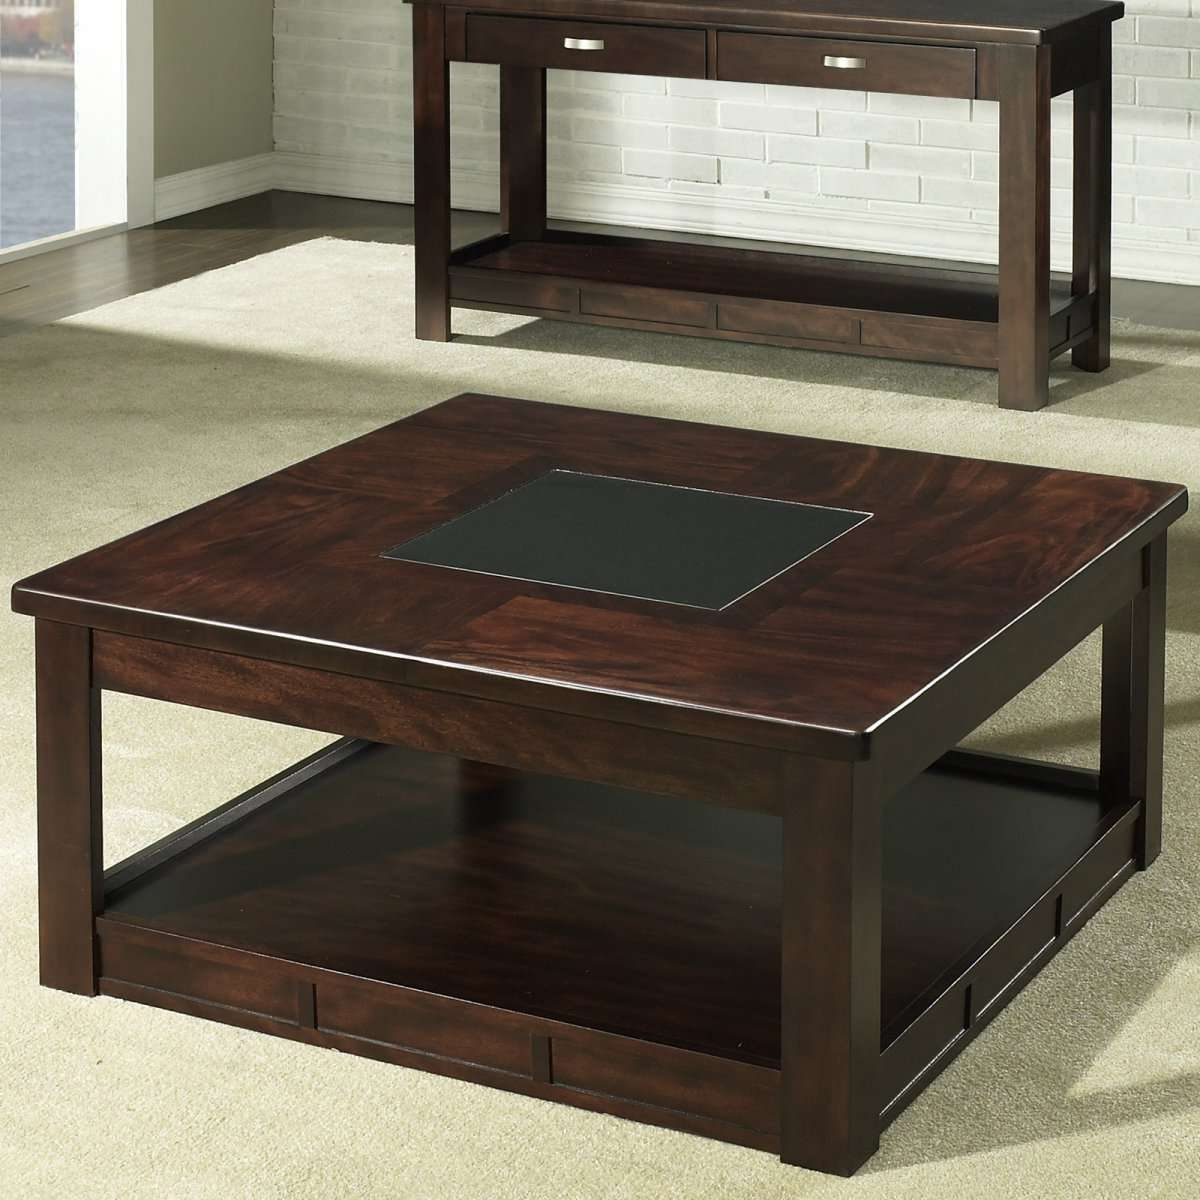 Coffee Tables : Coffee Table Square Wood With Storage Tables Glass Within Current Square Wood Coffee Tables With Storage (View 15 of 20)